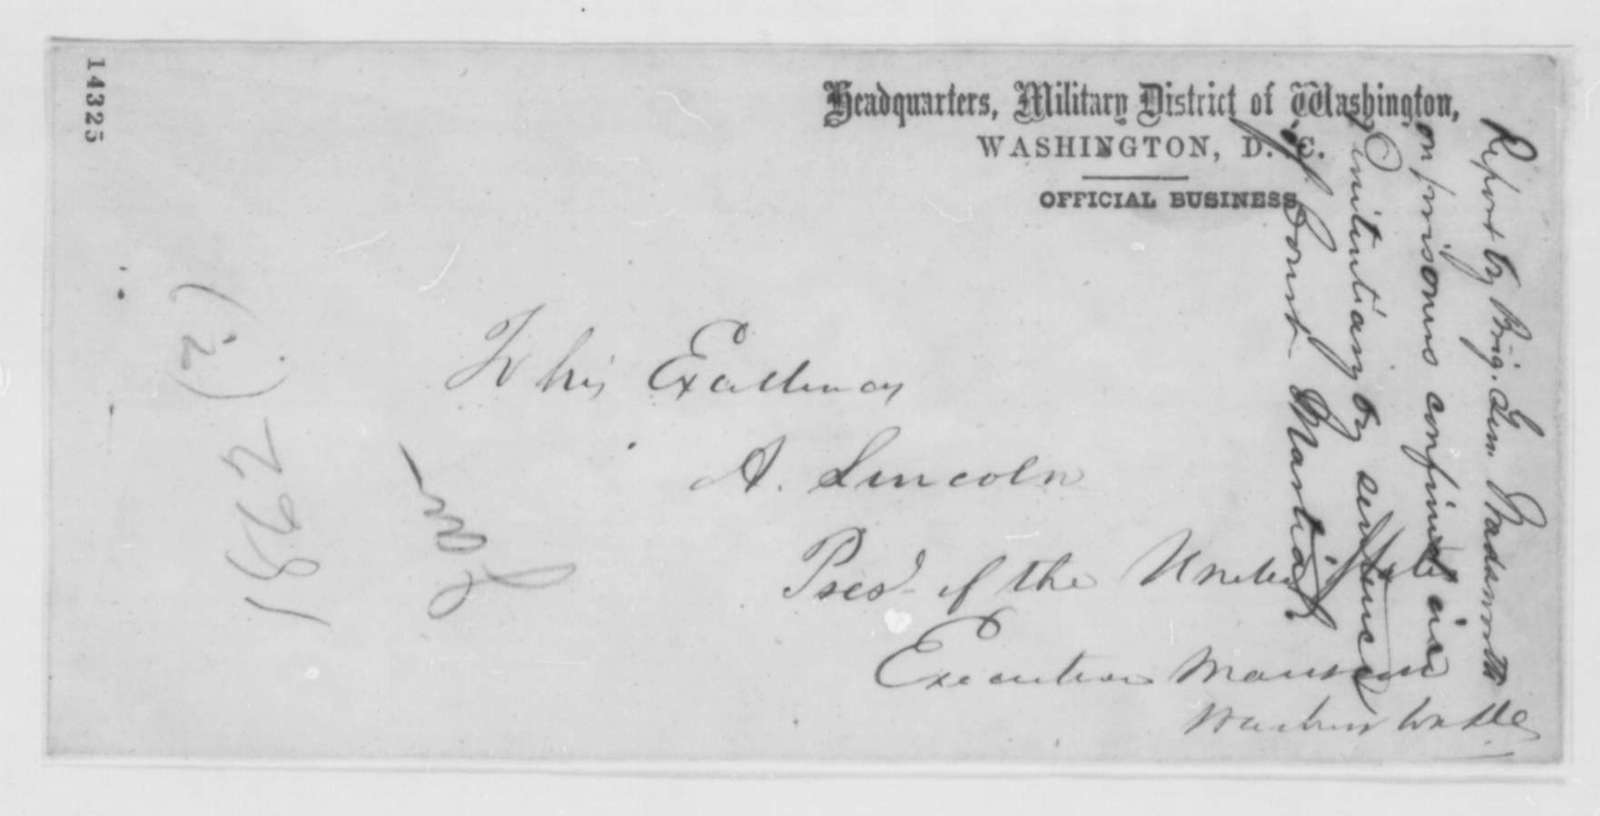 James S. Wadsworth to Abraham Lincoln, April 1862  (Report on military prisoners in Washington D.C. prison)